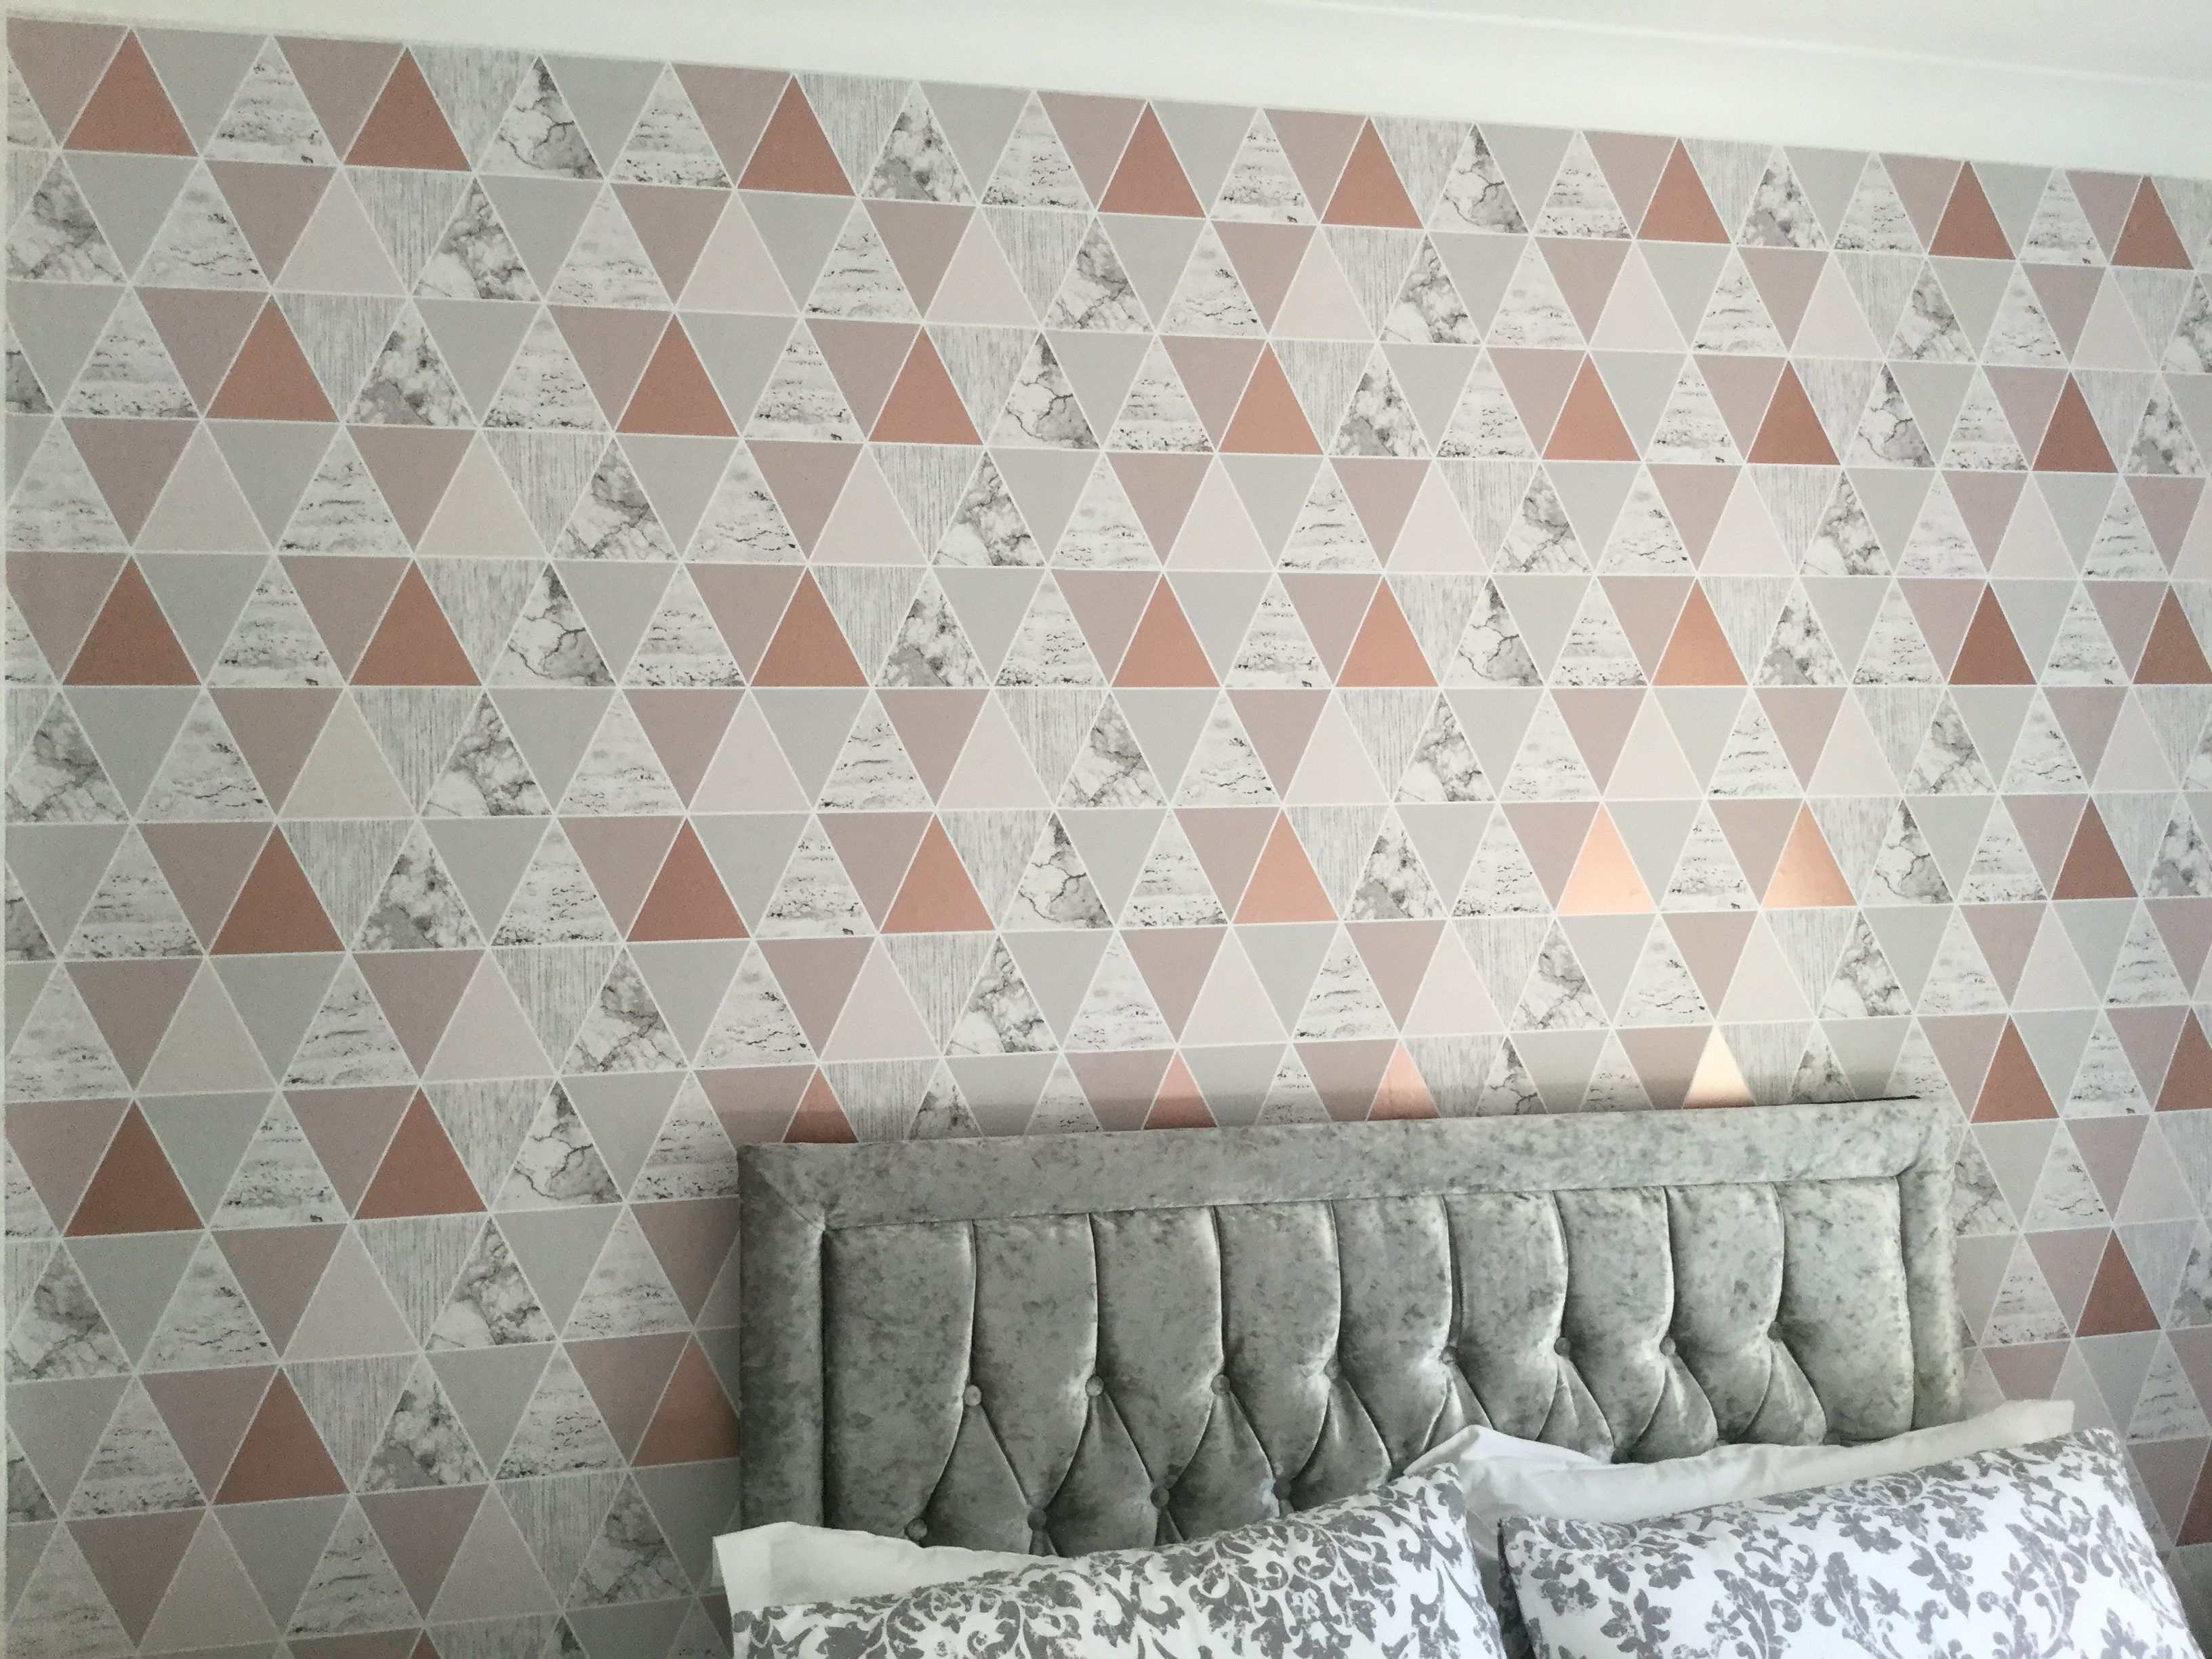 Bedroom Wallpaper Of The Year Rose Gold Reflection Graham